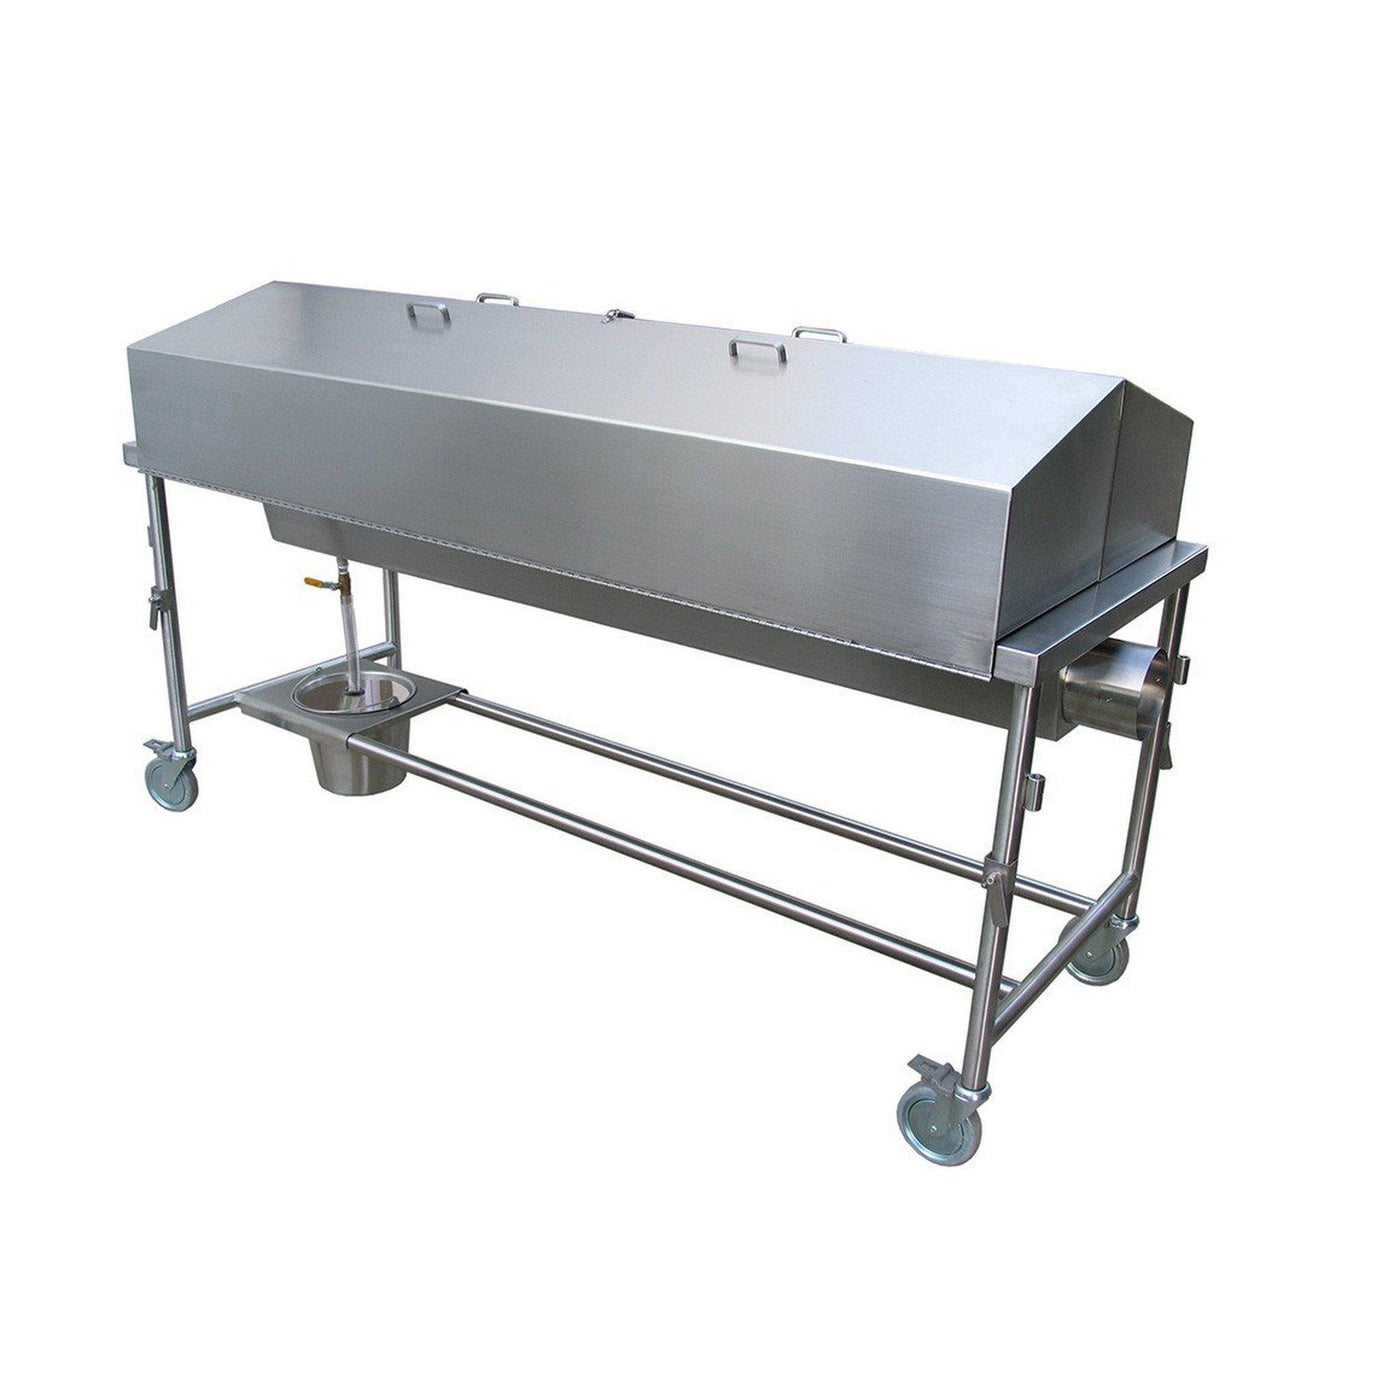 Hooded Dissection Table with Exhaust Chamber-Anatomy Dissection Tables-Mortech Manufacturing Company Inc. Quality Stainless Steel Autopsy, Morgue, Funeral Home, Necropsy, Veterinary / Anatomy, Dissection Equipment and Accessories